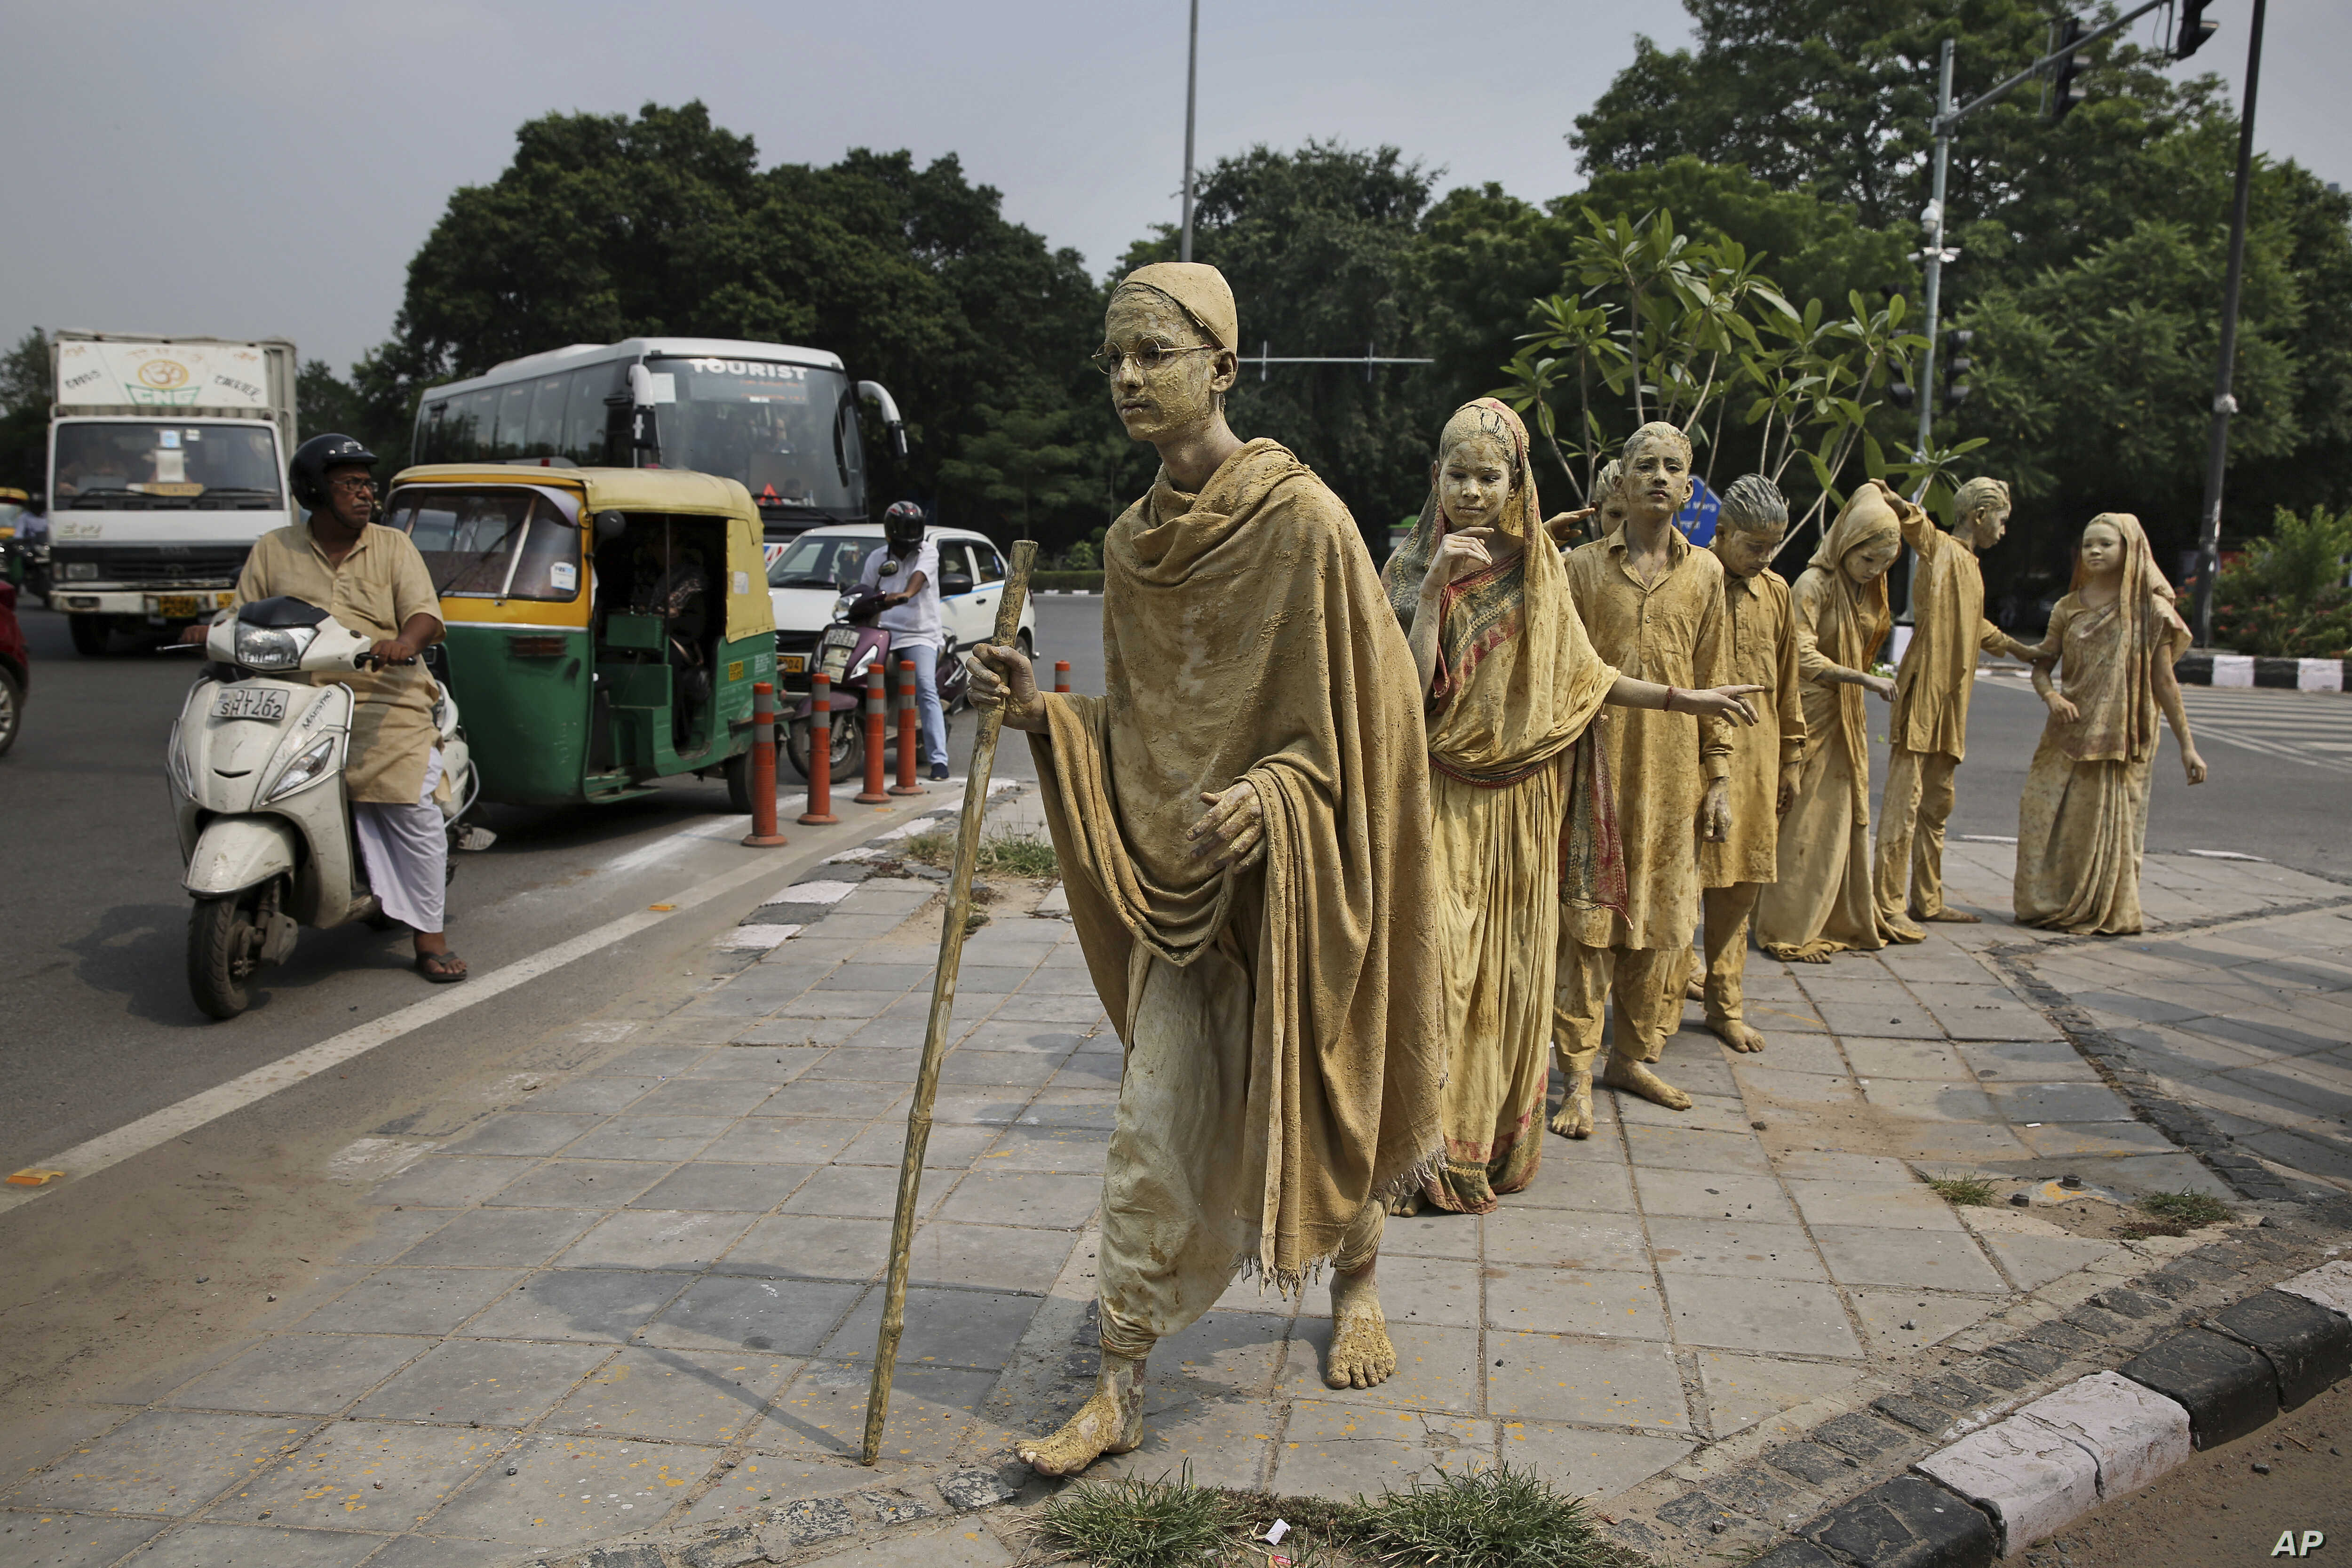 School children dressed up as statues, depicting Indian freedom leader Mahatma Gandhi's Dandi March, stand at a traffic intersection on the eve of Gandhi's 150th birth anniversary in New Delhi.